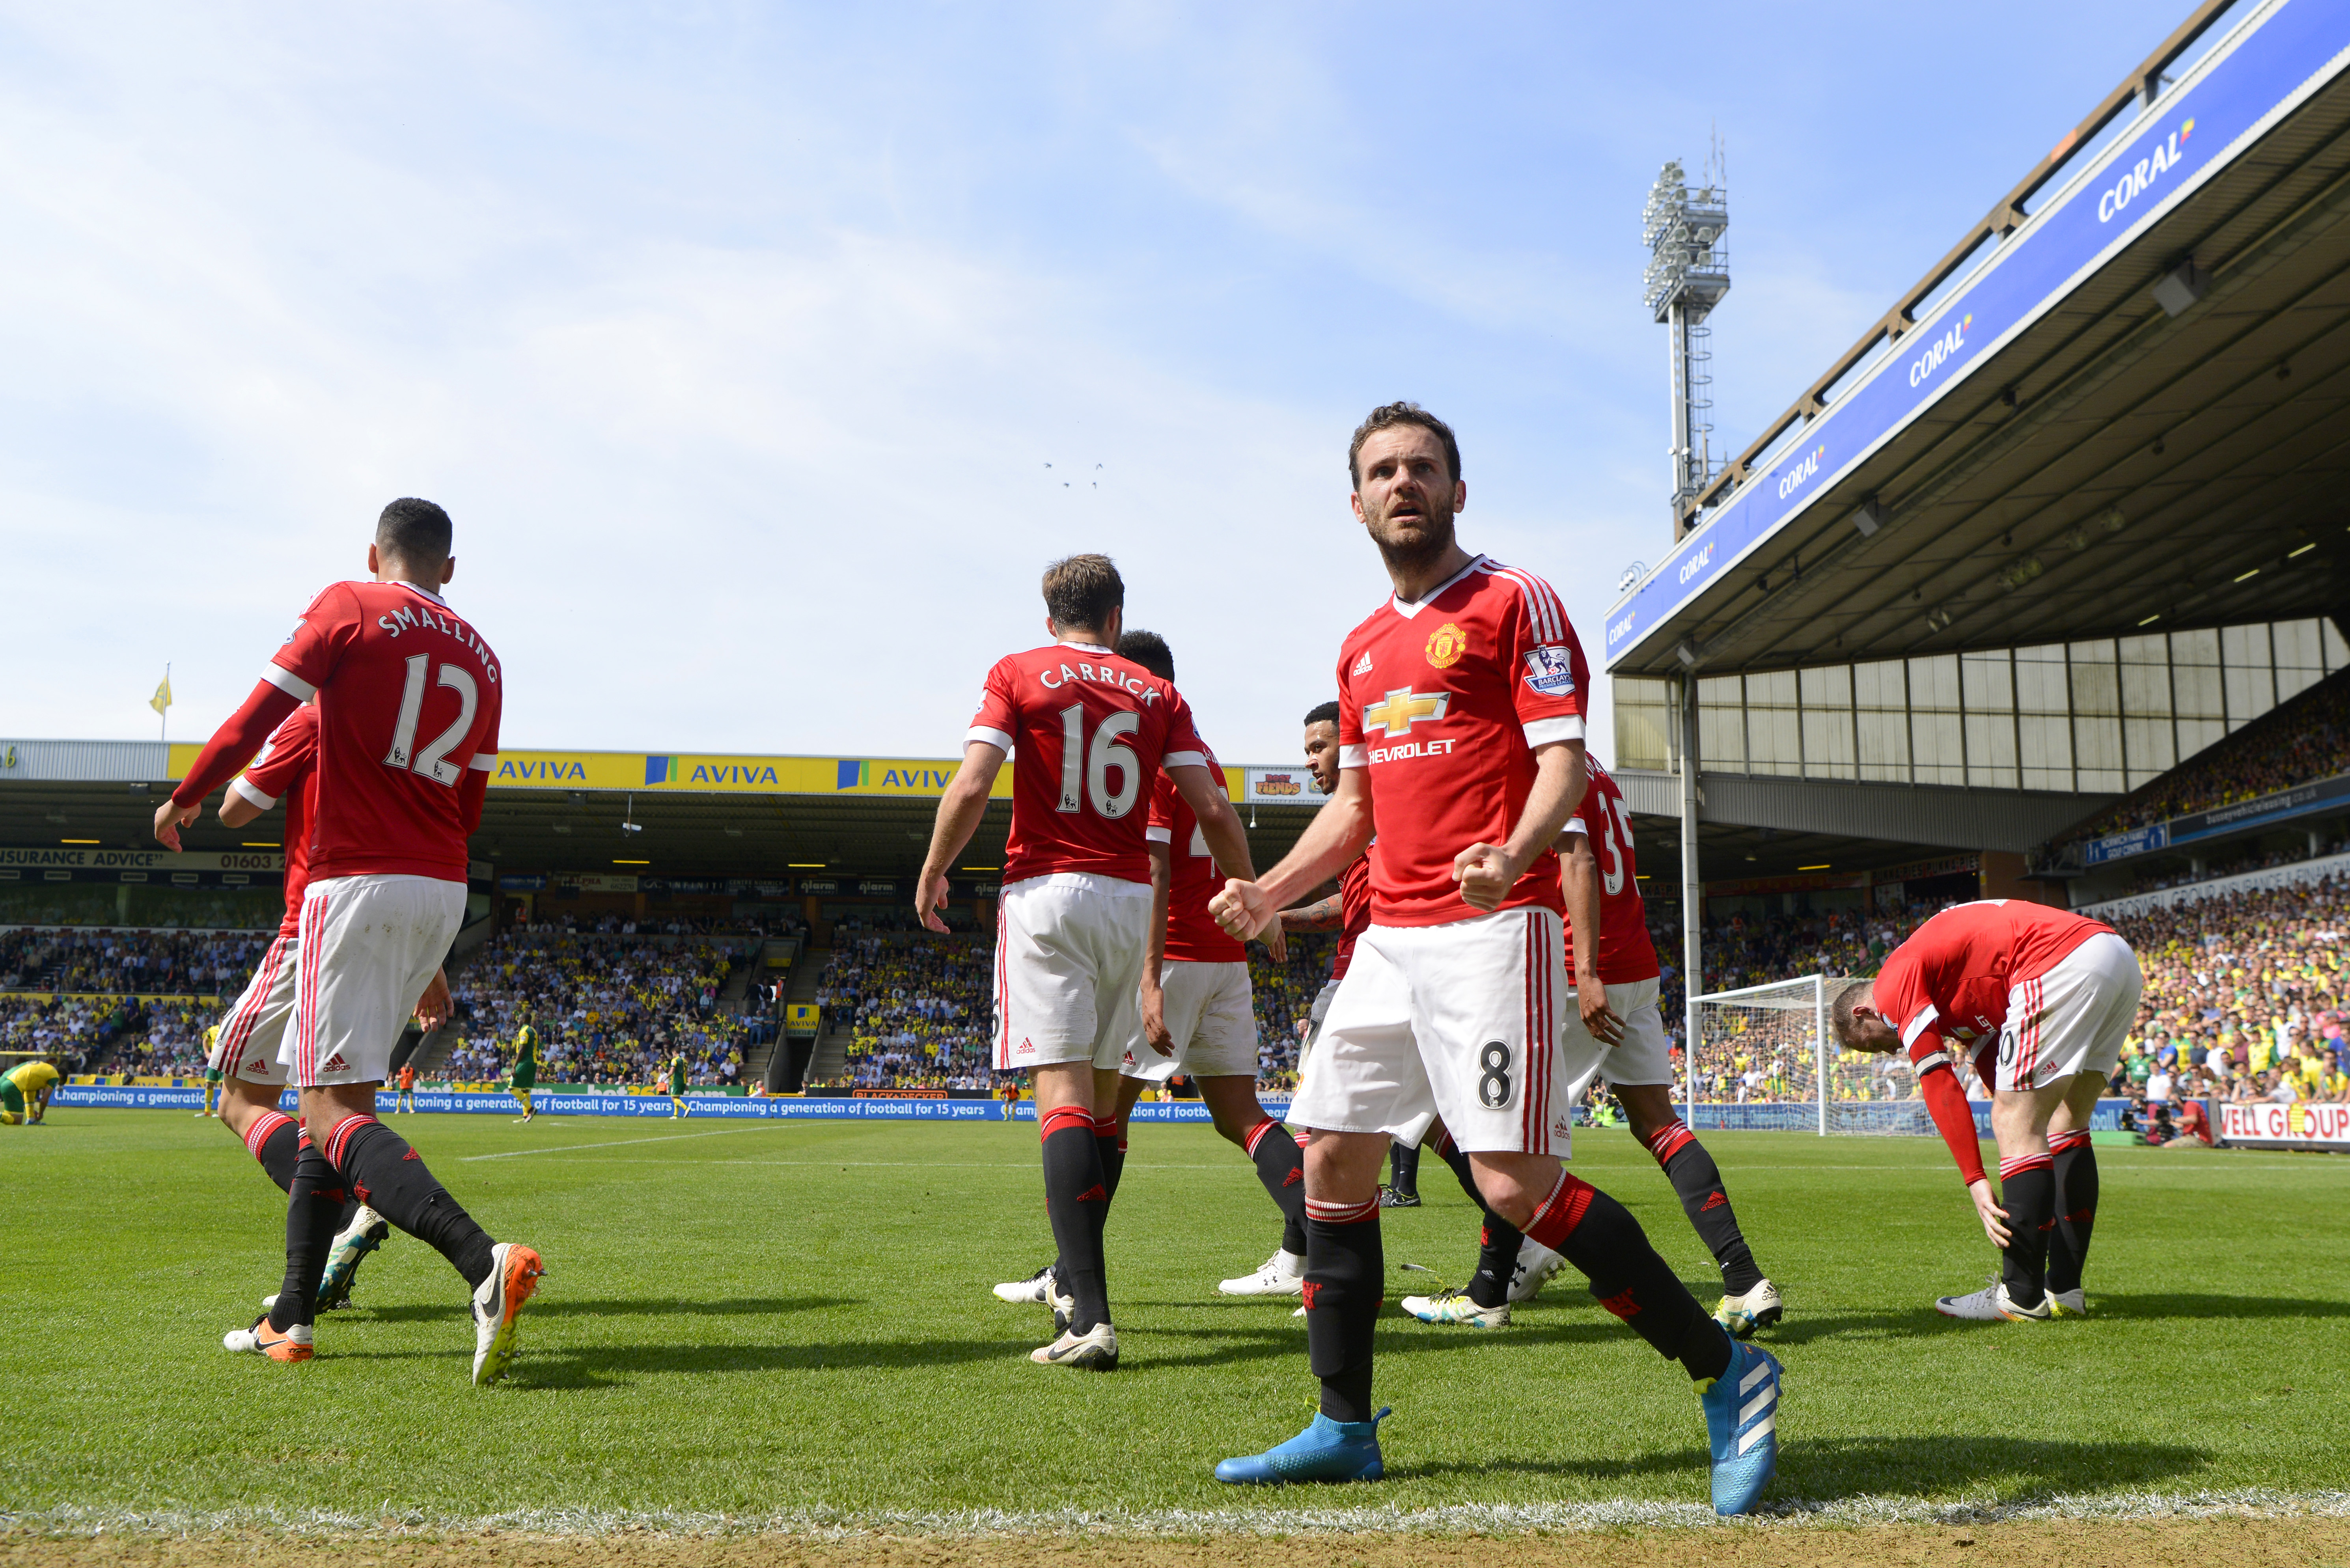 NORWICH, ENGLAND - MAY 07:  Juan Mata of Manchester United celebrates scoring his team's first goal during the Barclays Premier League match between Norwich City and Manchester United at Carrow Road on May 7, 2016 in Norwich, England.  (Photo by Mike Hewitt/Getty Images)